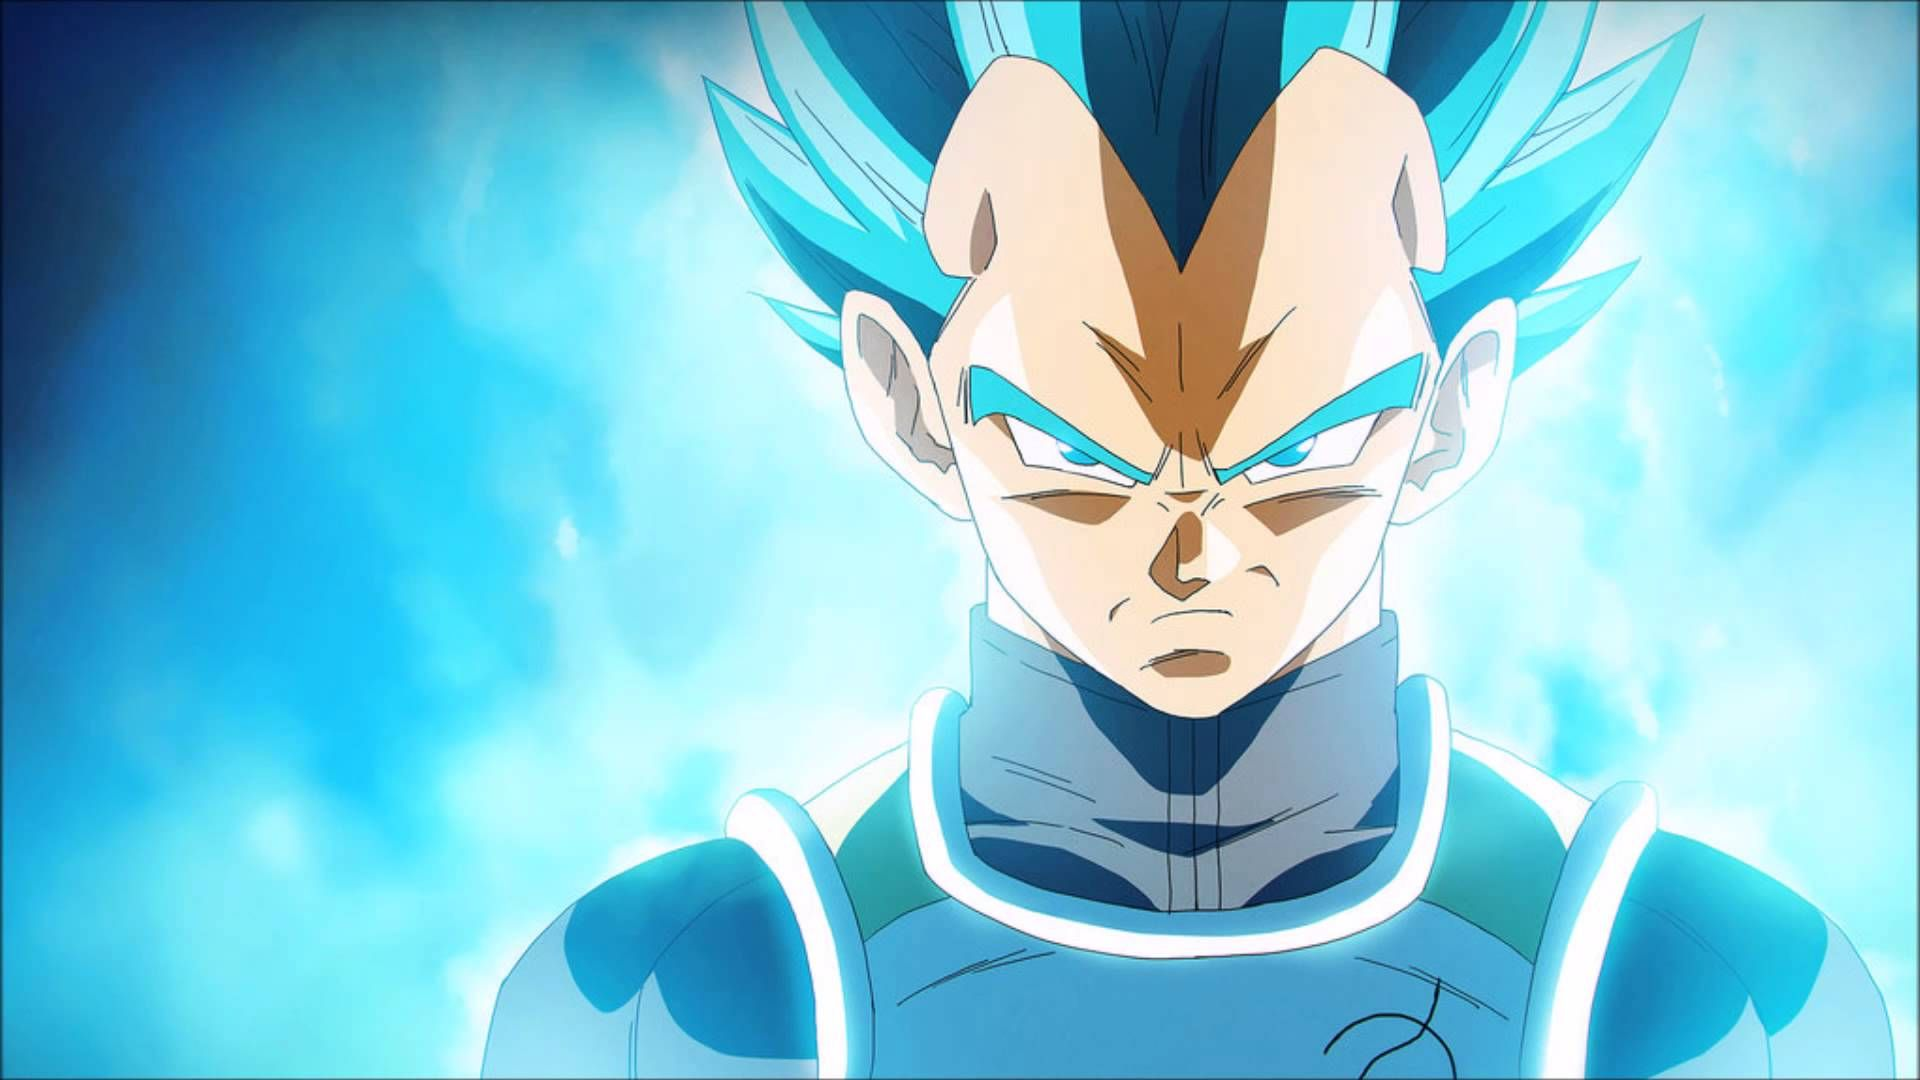 Cool Wallpaper High Quality Dbz - 0813cf450c505ea36926d46613a62051  Perfect Image Reference_12723.jpg